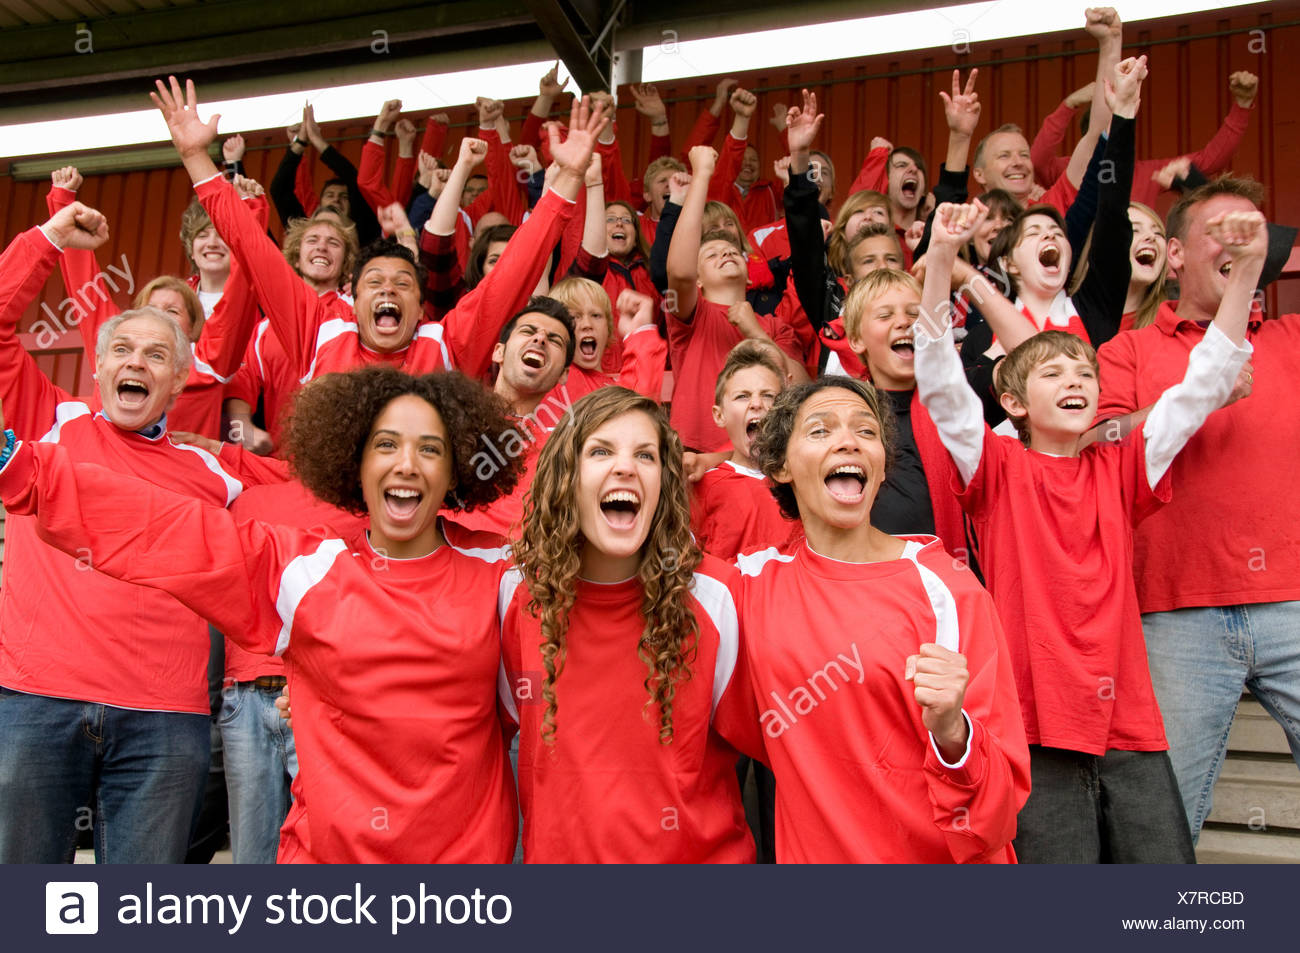 Group of football supporters celebrating - Stock Image